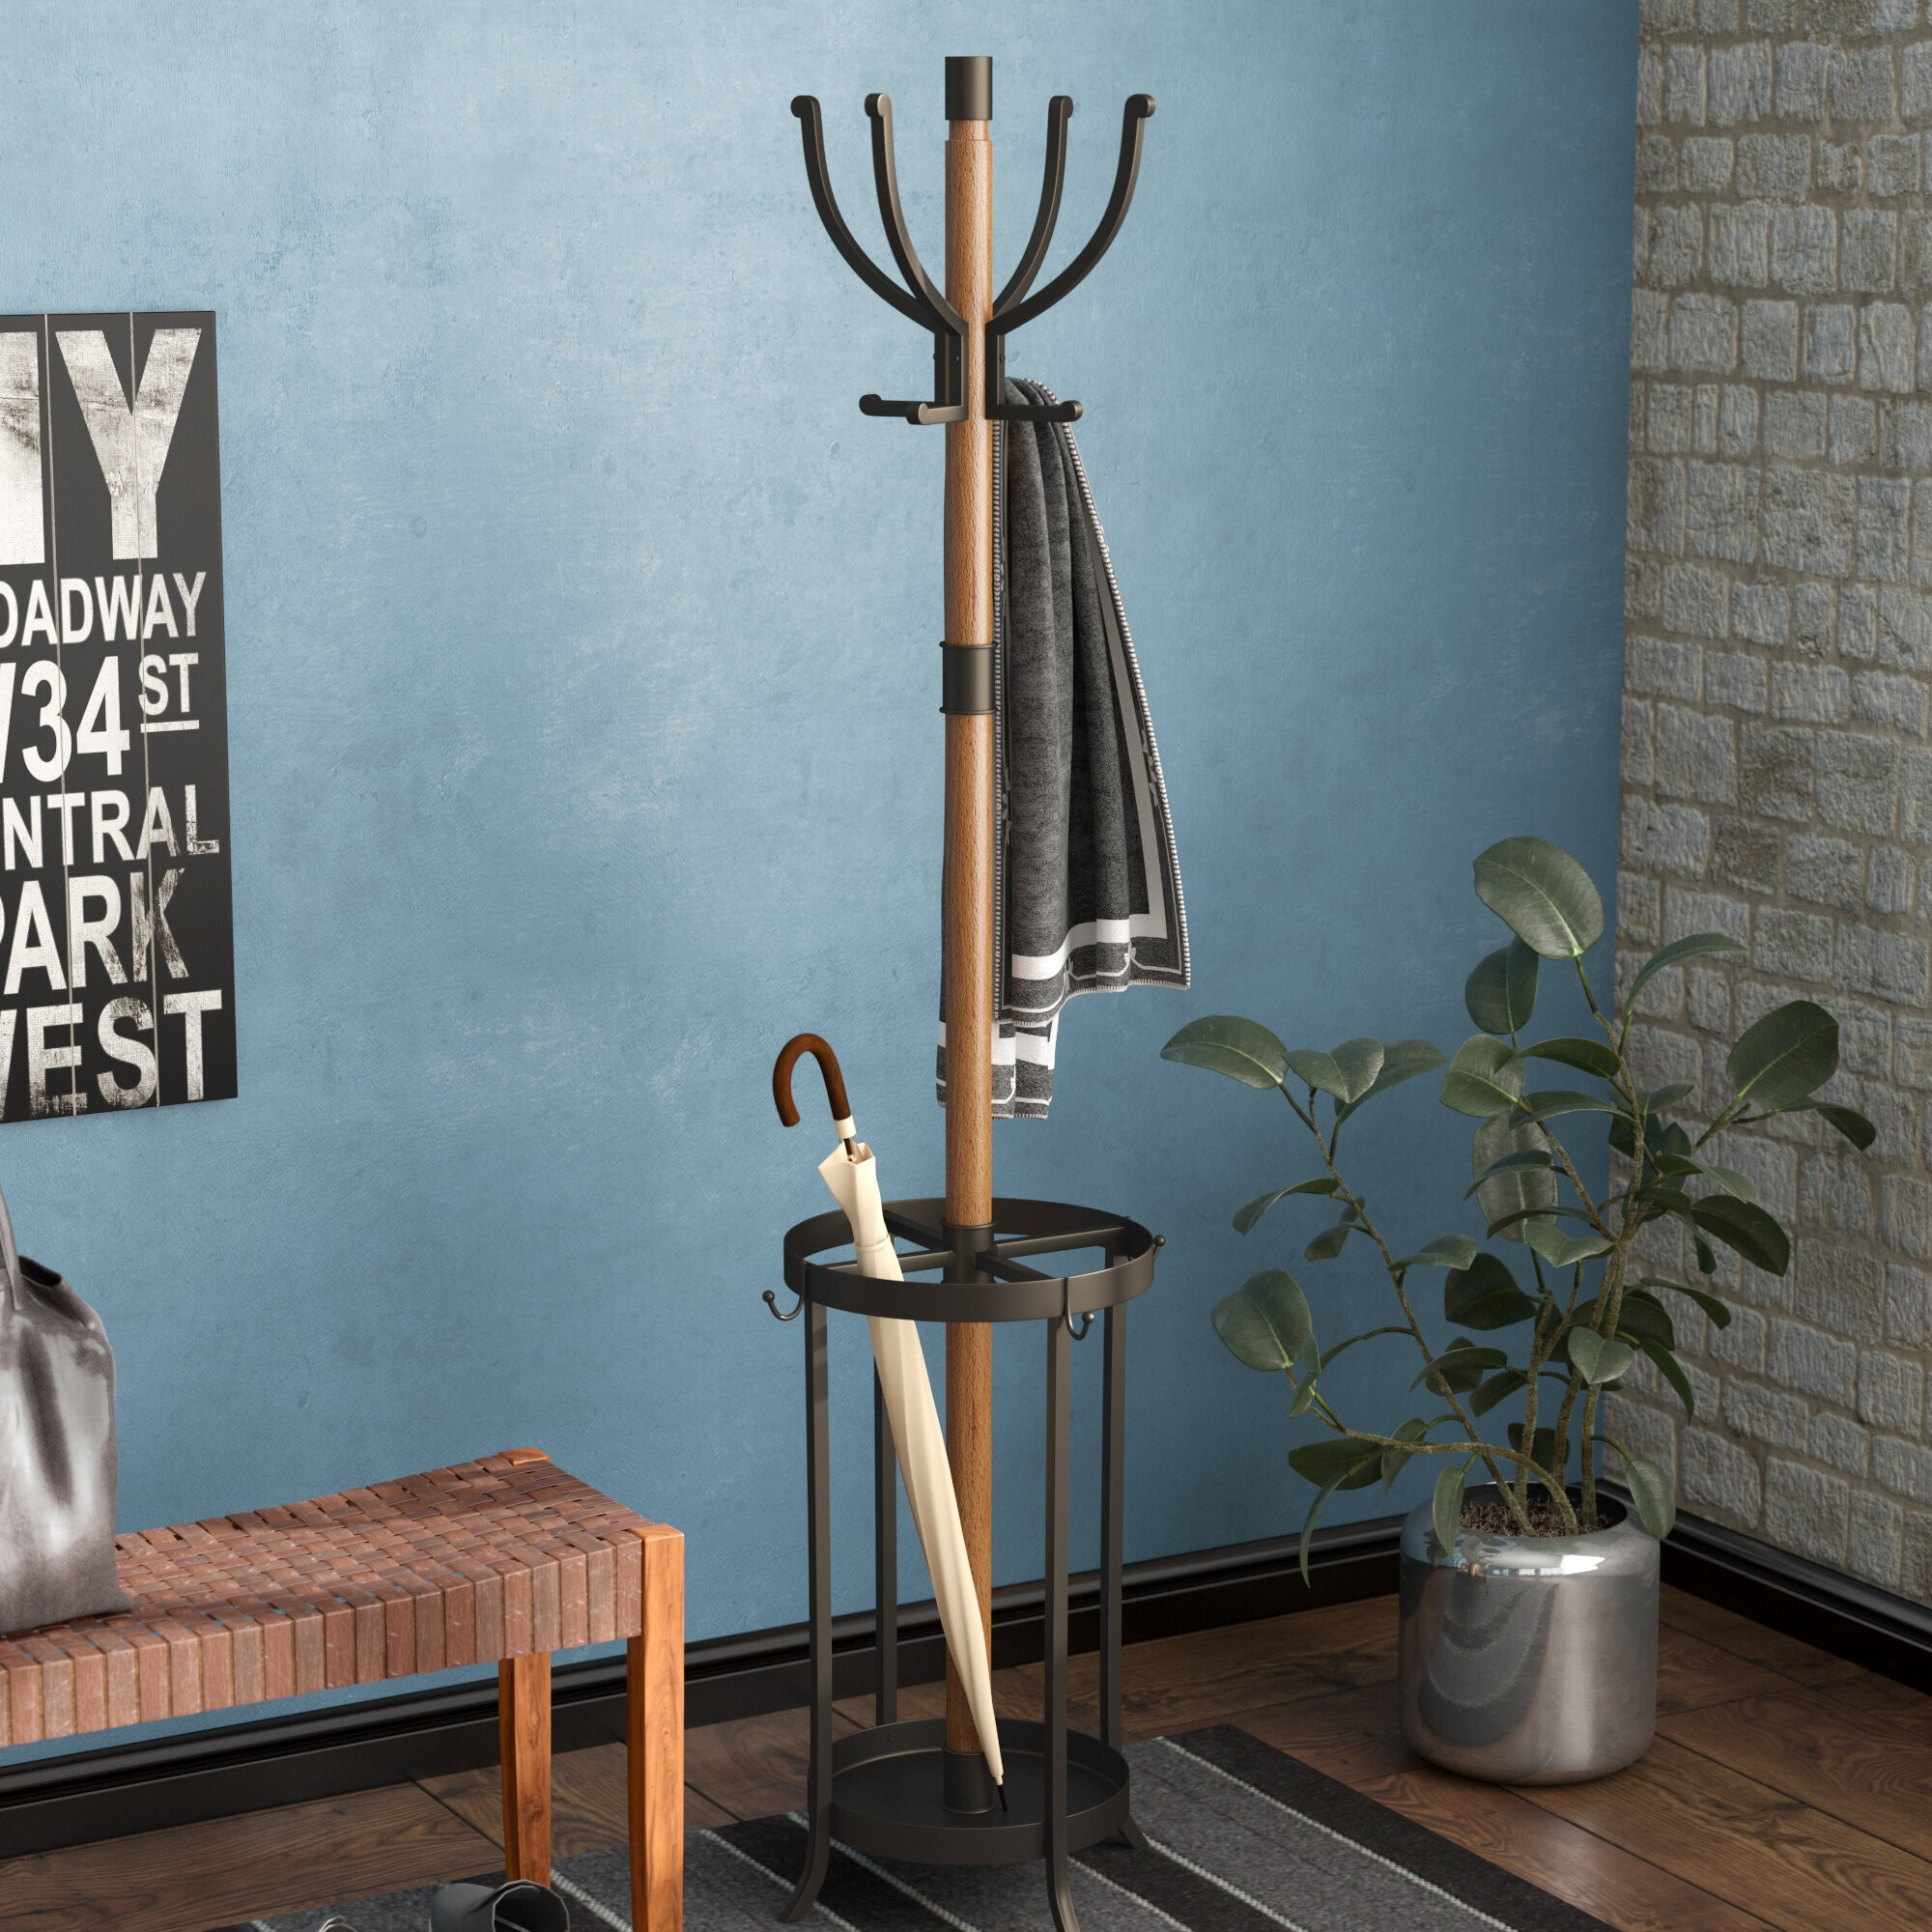 How To Choose Coat Racks & Umbrella Stands